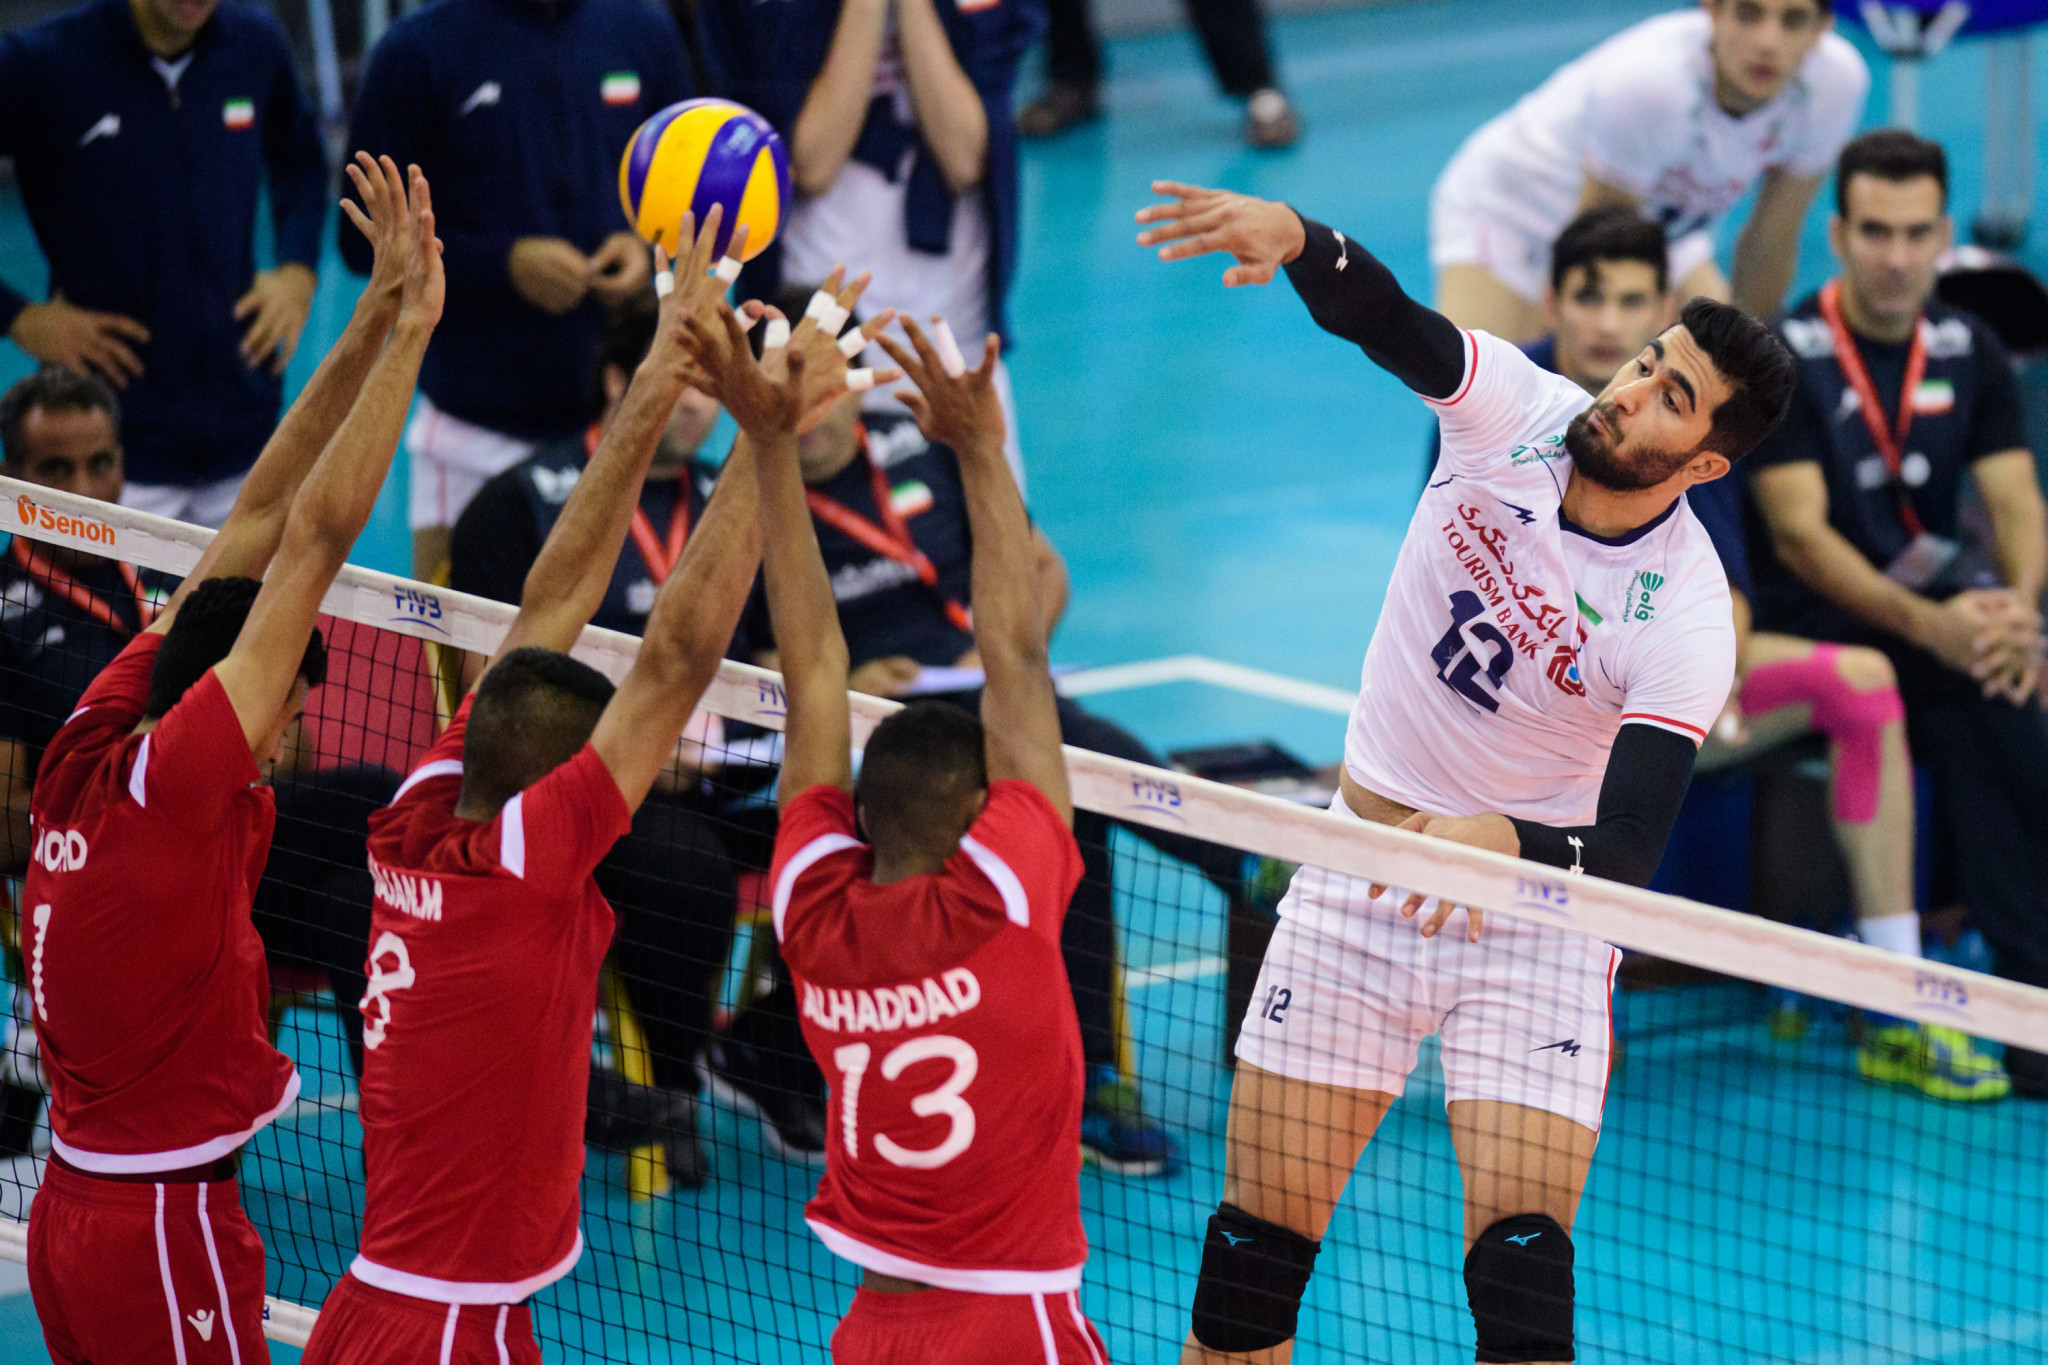 Iran's captain Amirhossein Esfandiar, right, has led his team to a first final in the FIVB Men's Under-21 World Championship in Bahrain ©FIVB